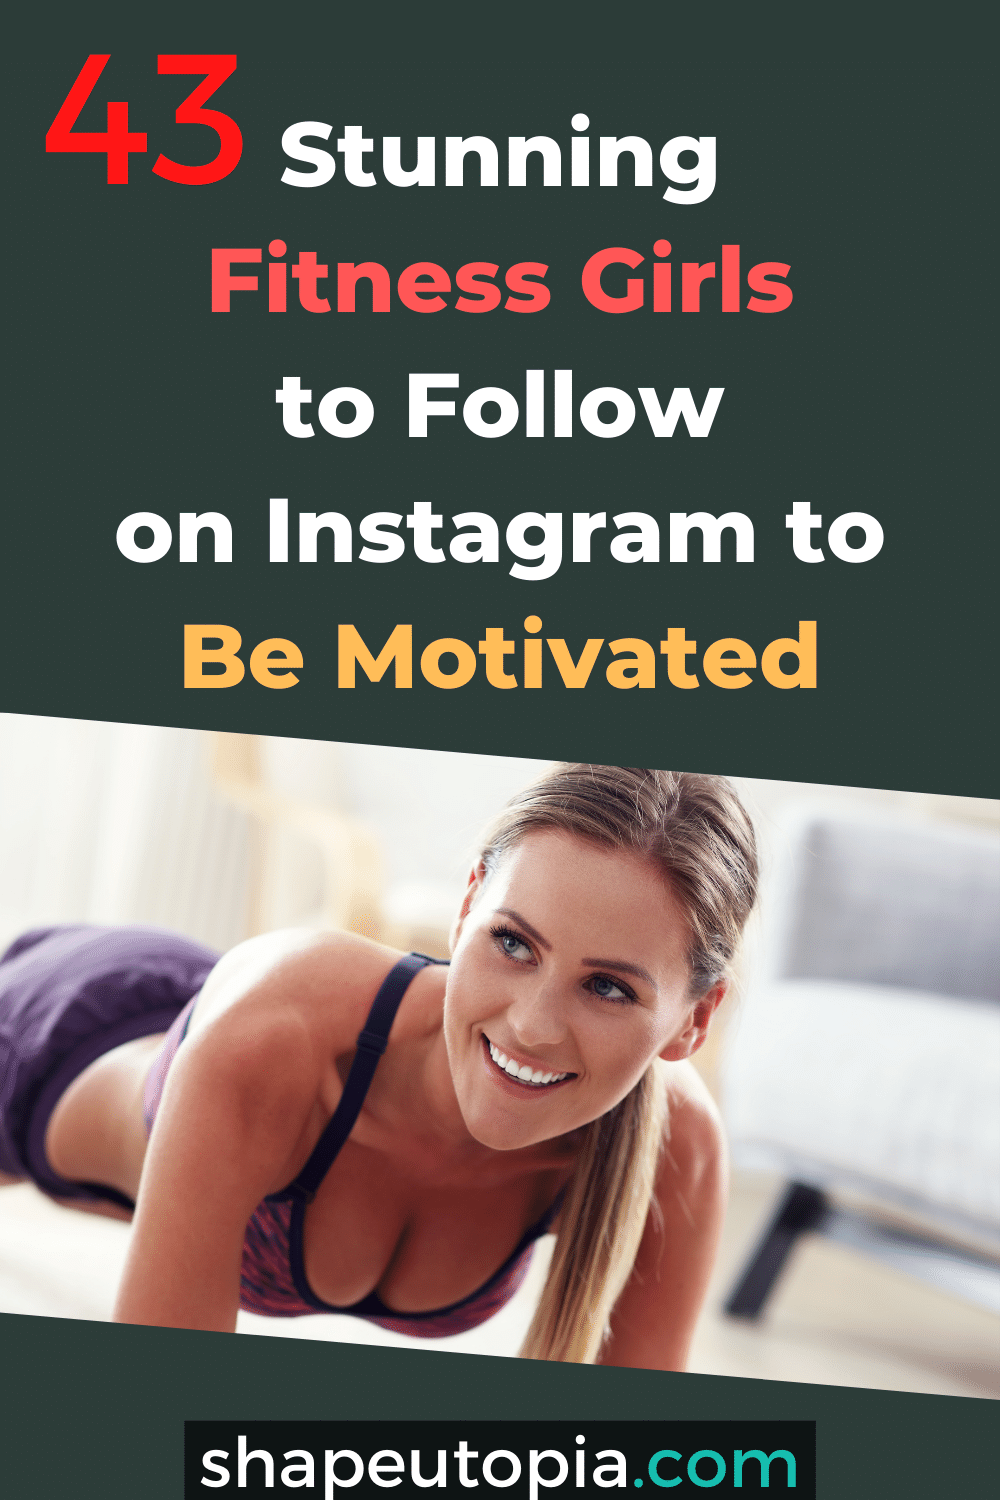 Stunning Fitness Girls to Follow on Instagram to Be Motivated